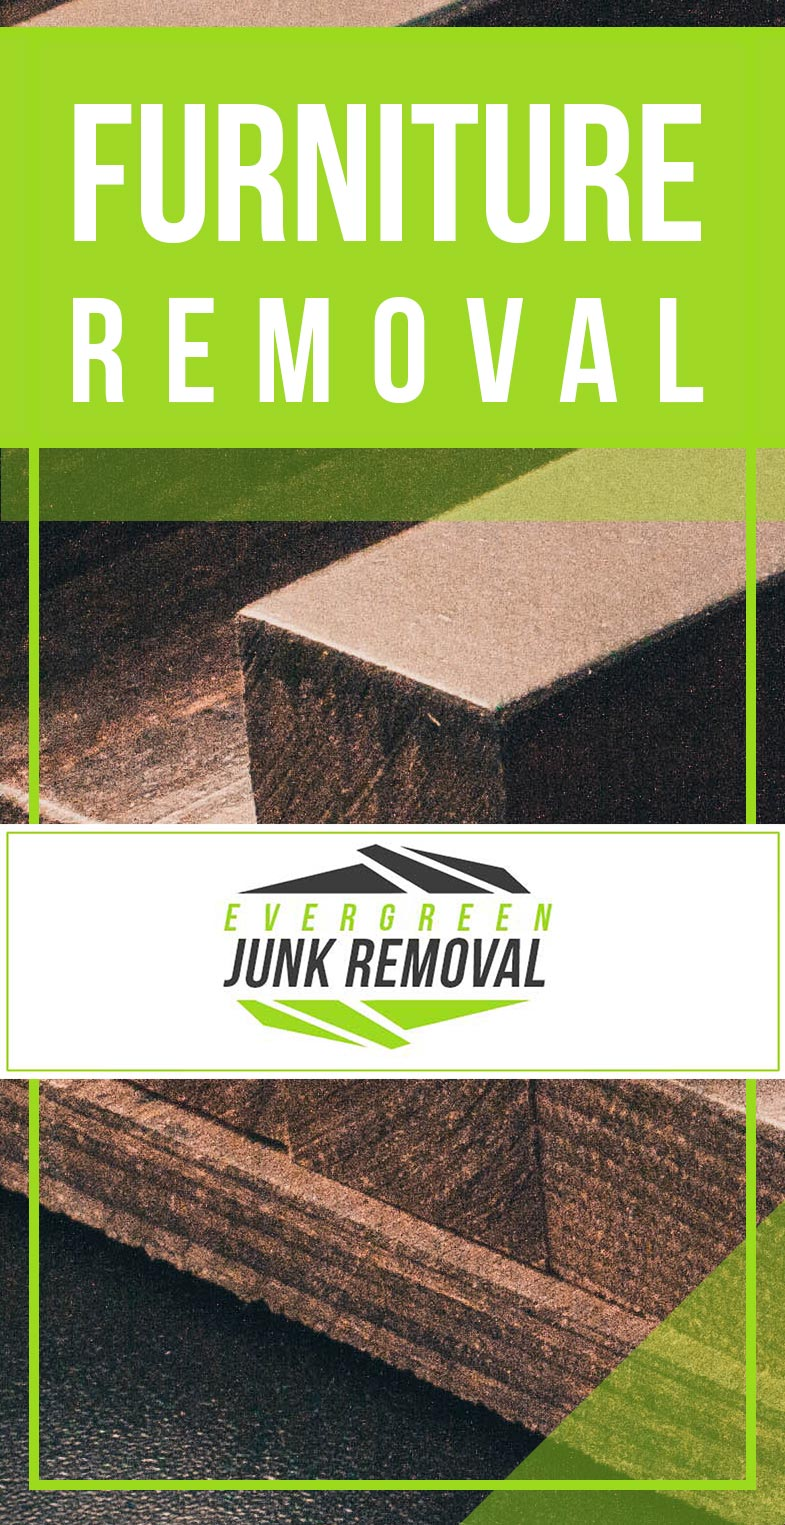 Oak-Ridge-Furniture-Removal